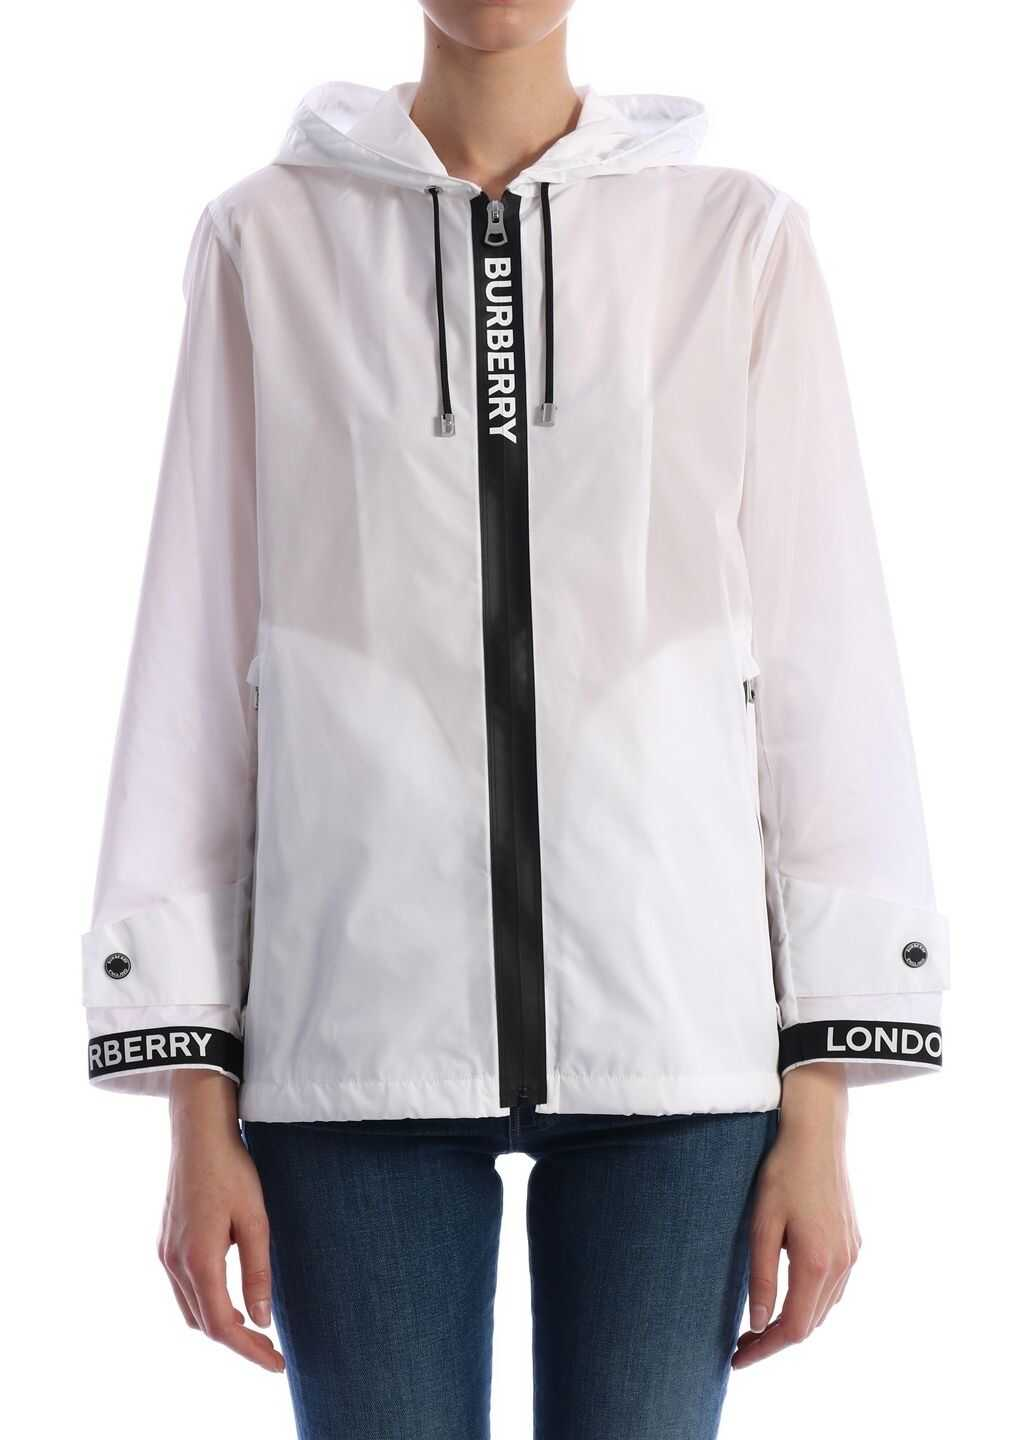 Burberry Jacket With Logoed Ribbons White